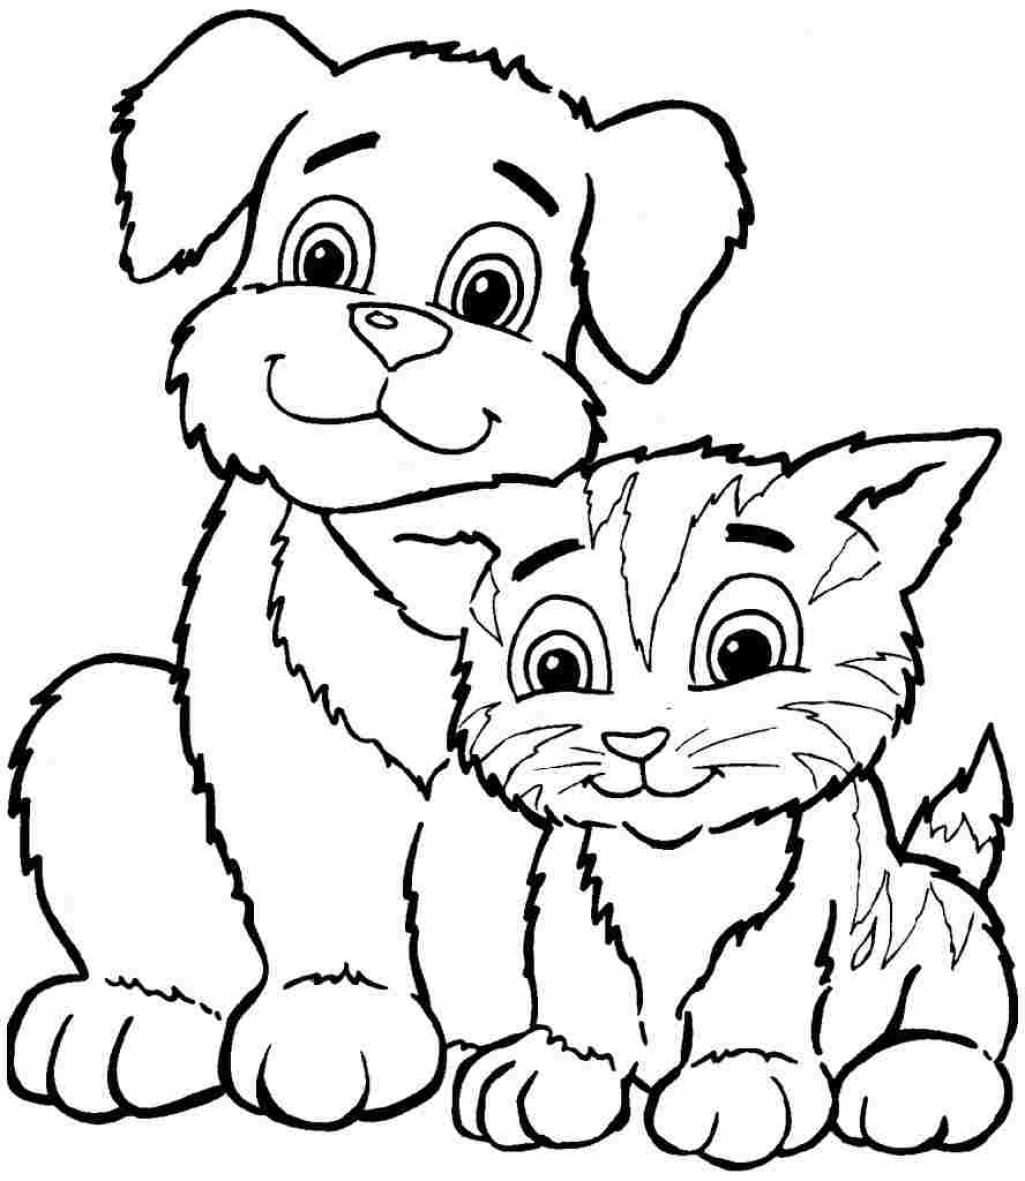 Printable Coloring Pages For Kids Animals at GetDrawings.com ...